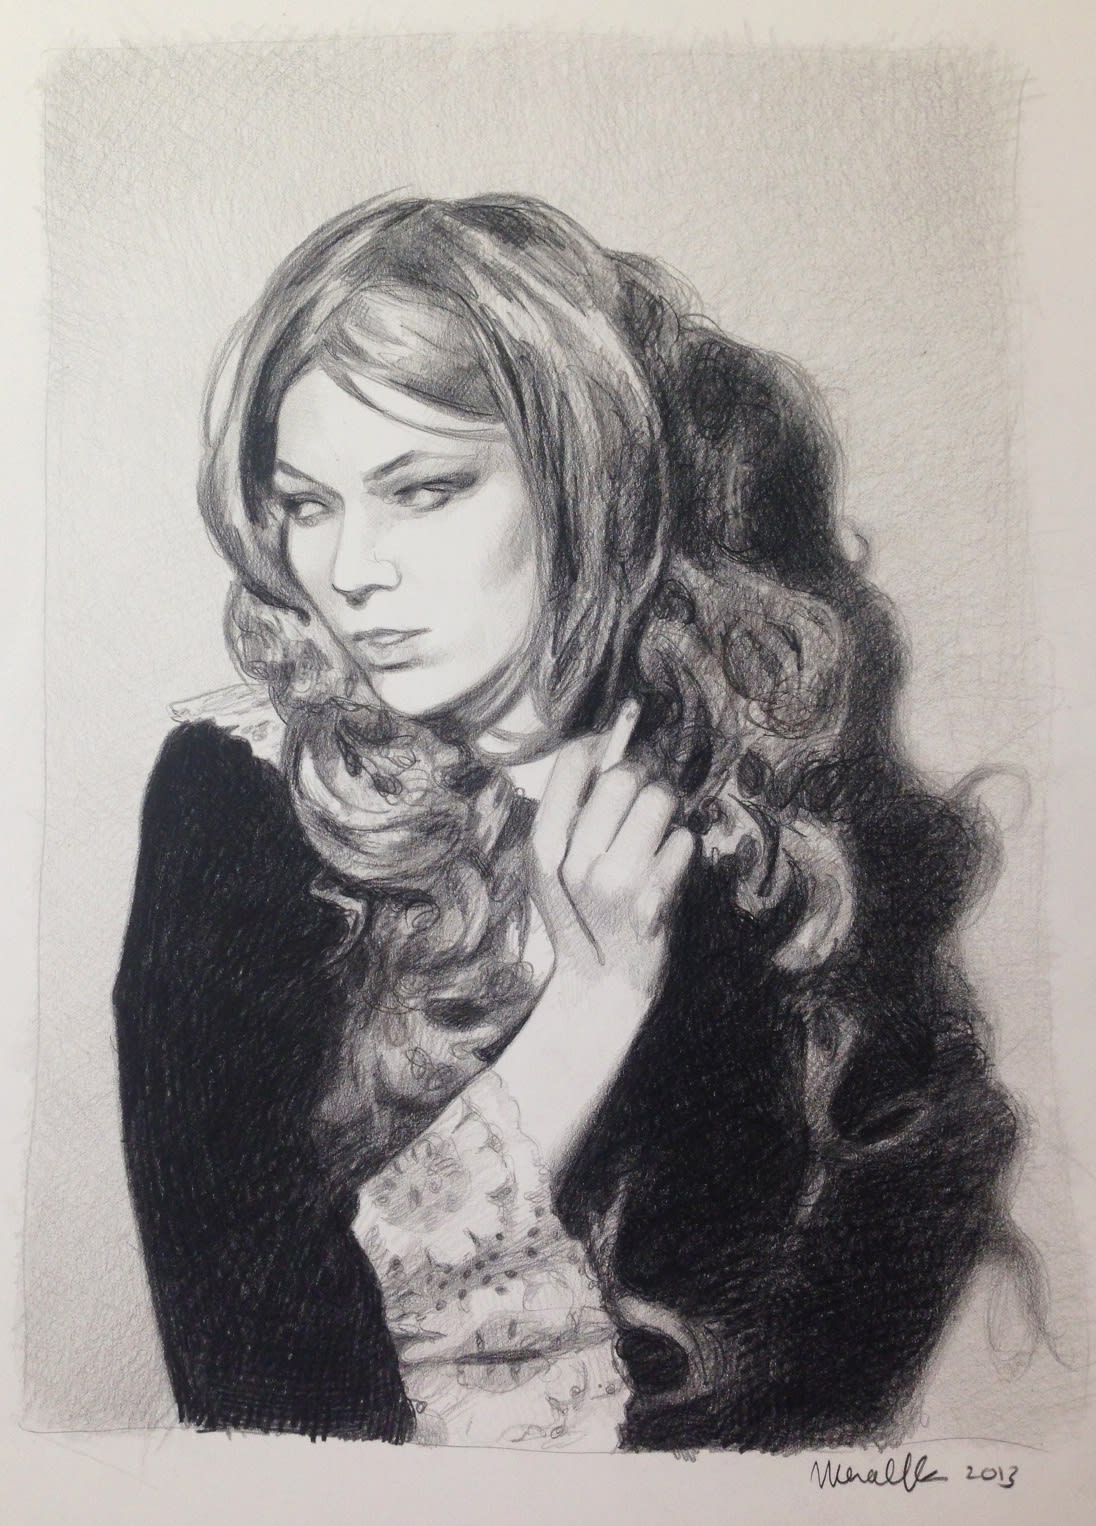 Mercedes Helnwein Cousin IV Black pencil on paper 15.5 x 11